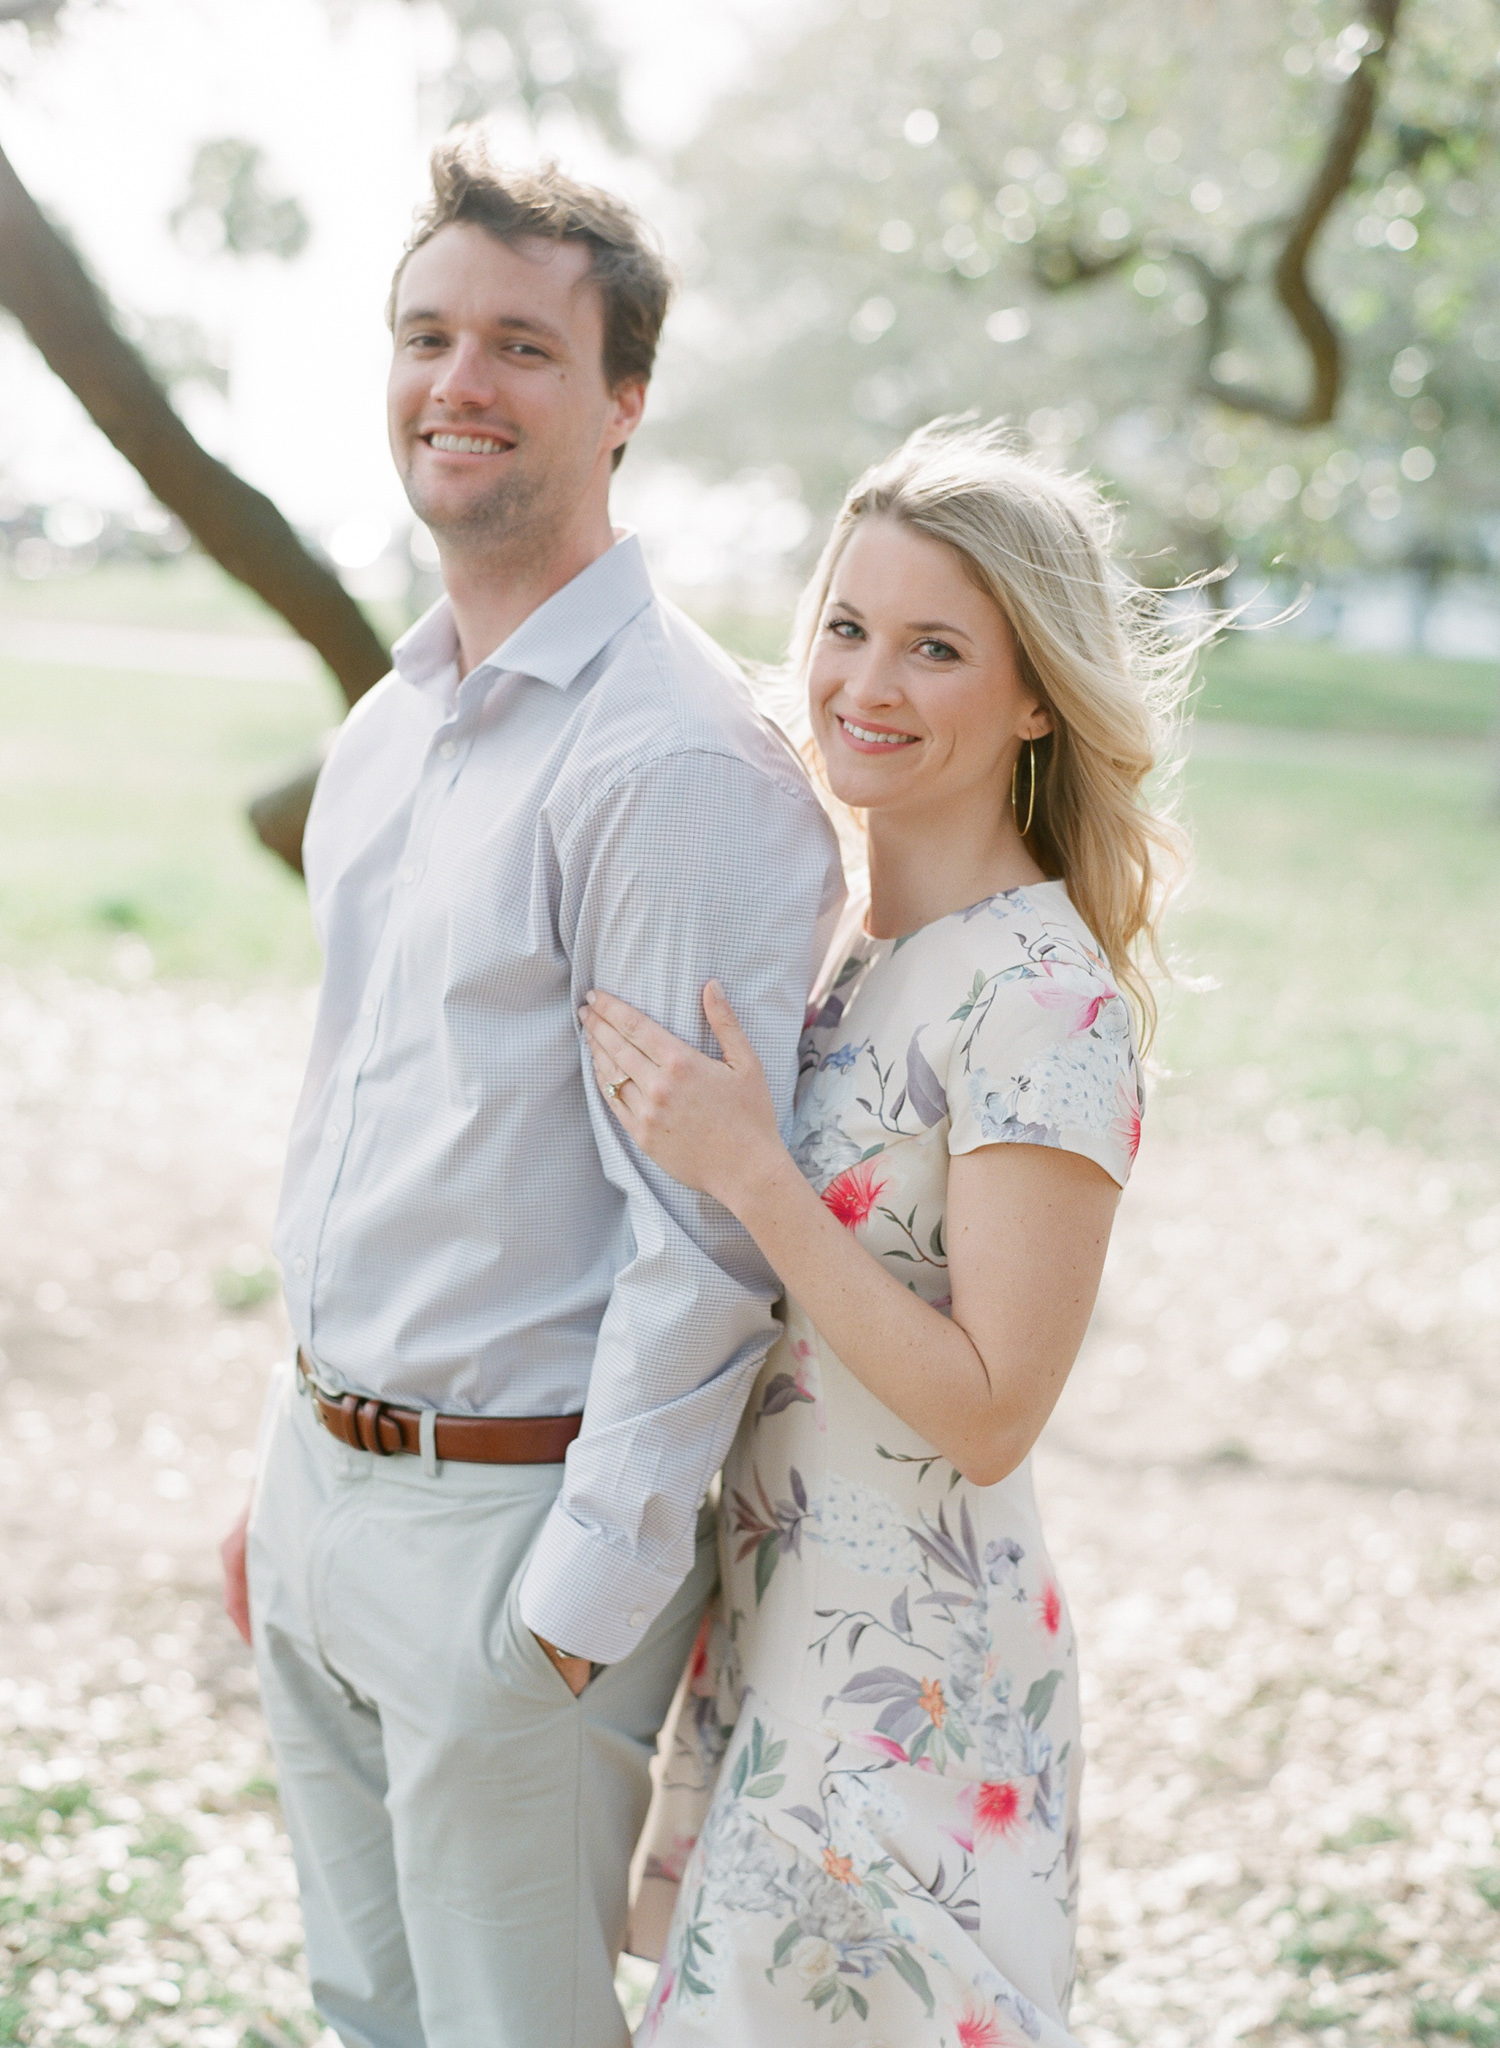 Charleston-Engagement-Session-Photos-24.jpg